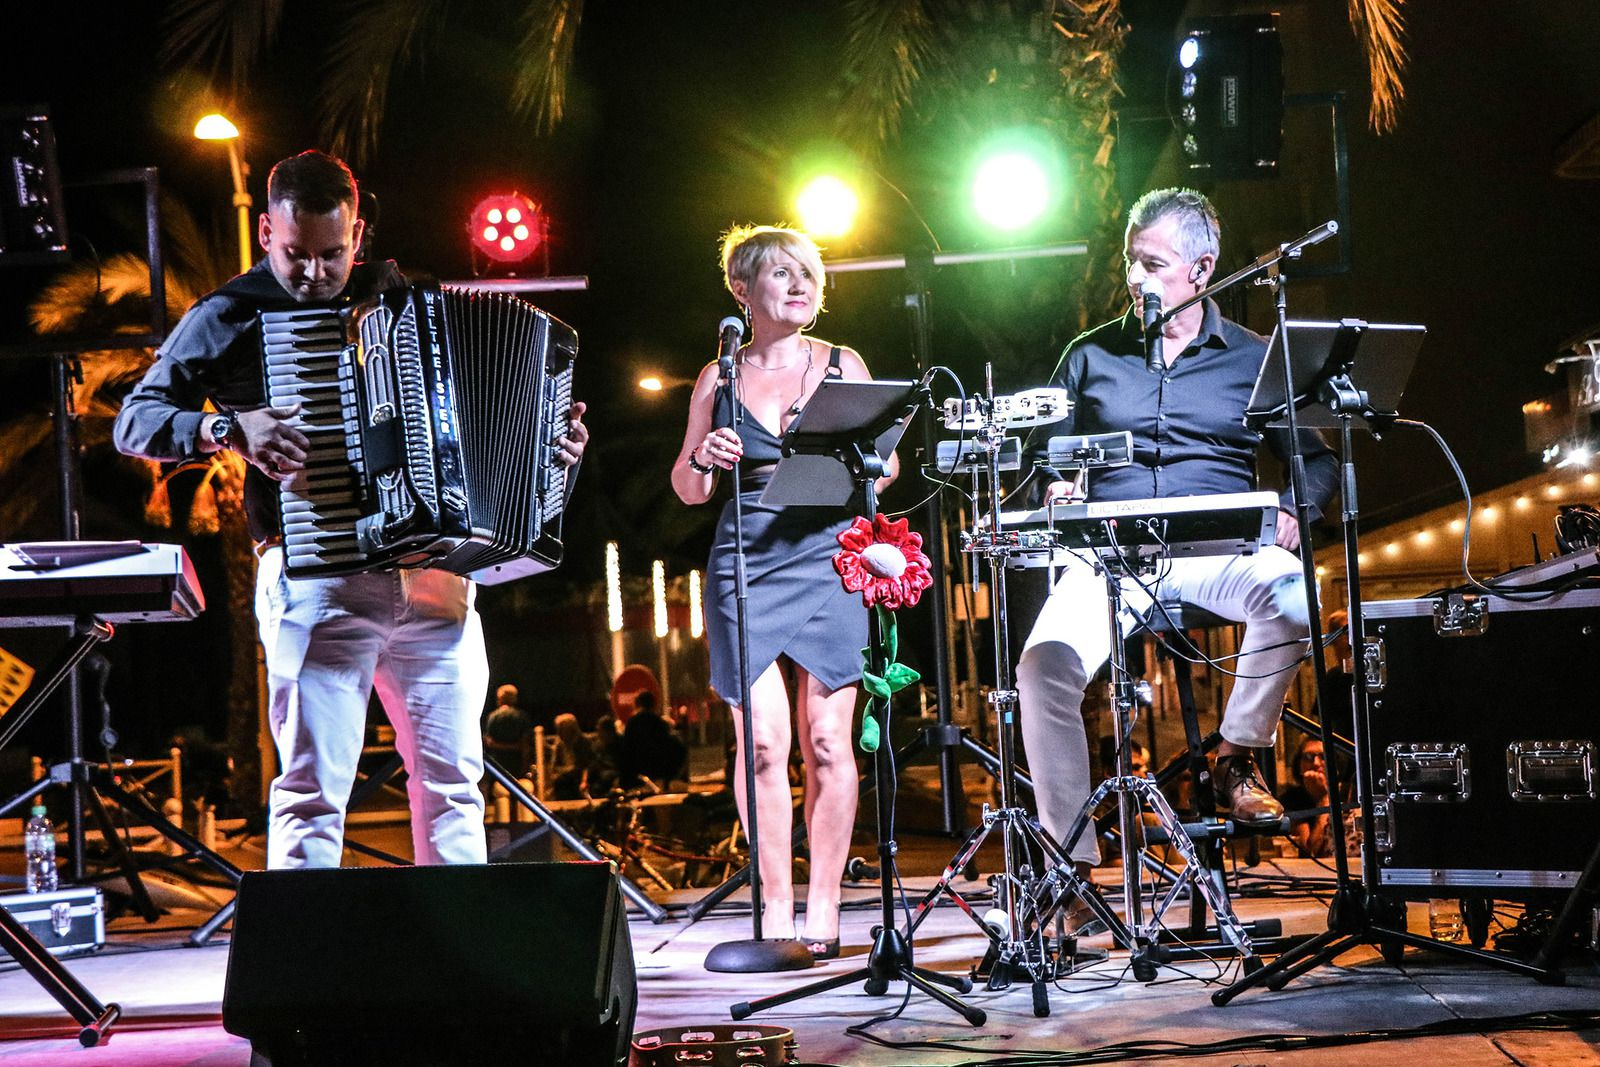 Groupe musical Aude